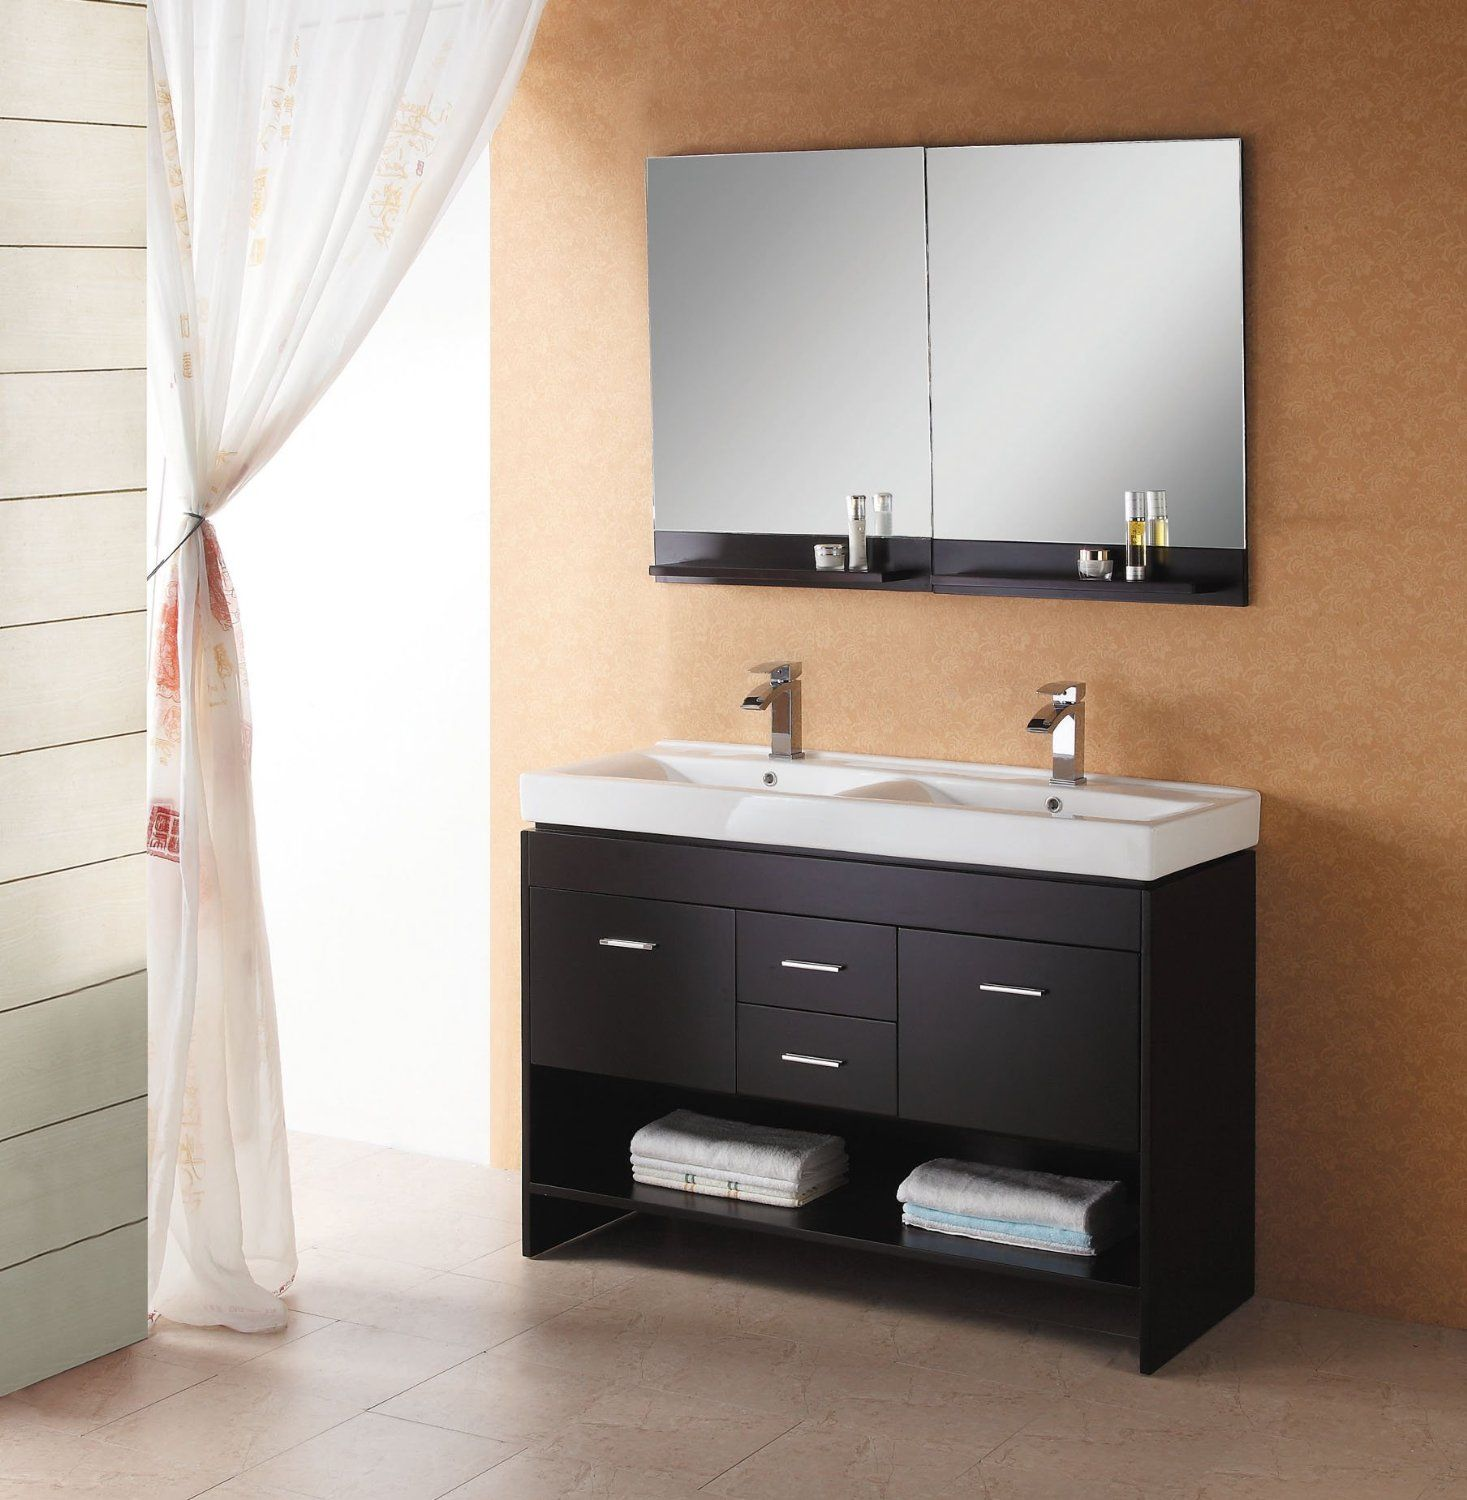 Bathroom Cool Black Custom Wooden Double Bathroom Sink Cabinets - Custom made bathroom vanity units for bathroom decor ideas